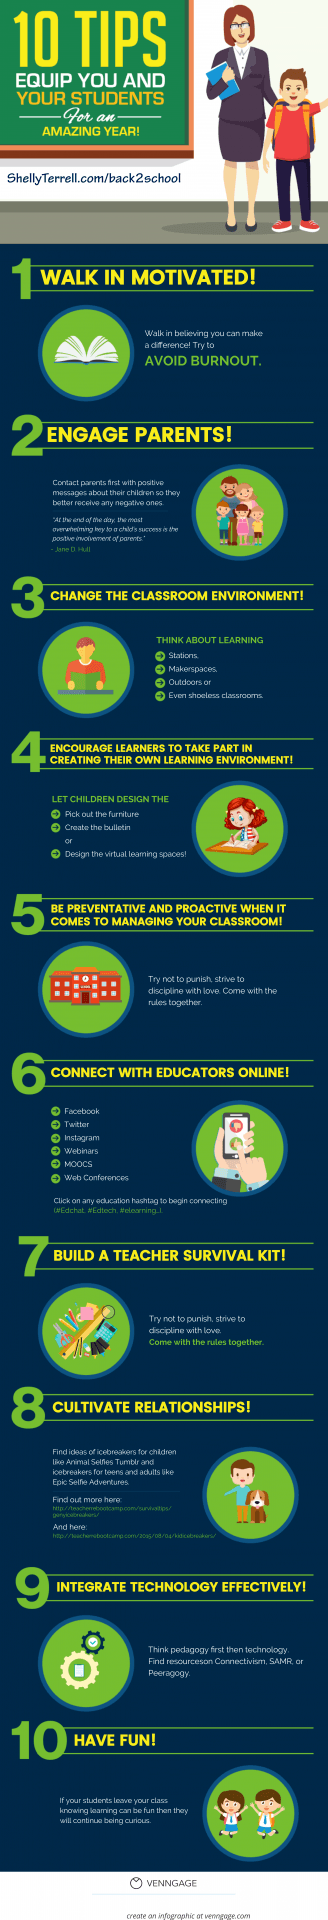 10 Tips for an Amazing School Year Infographic